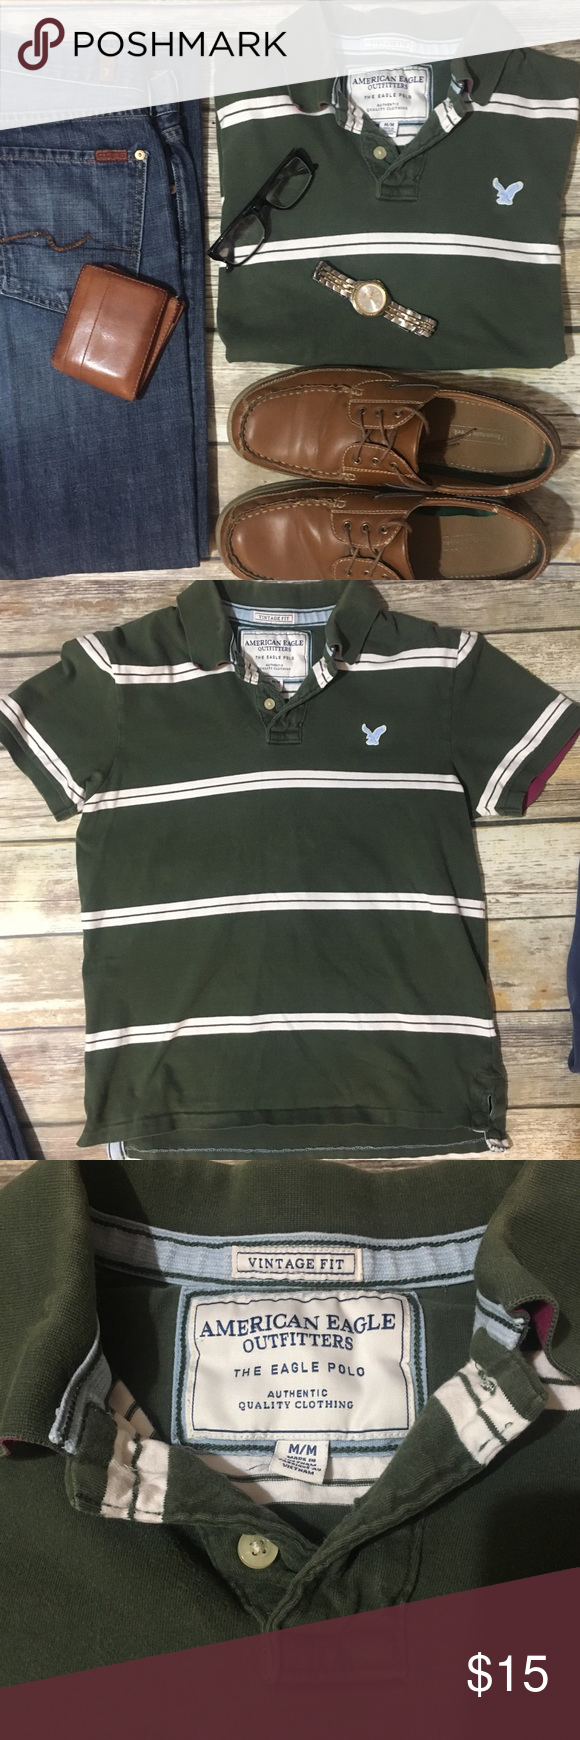 f9a43ae842f American Eagle Outfitters